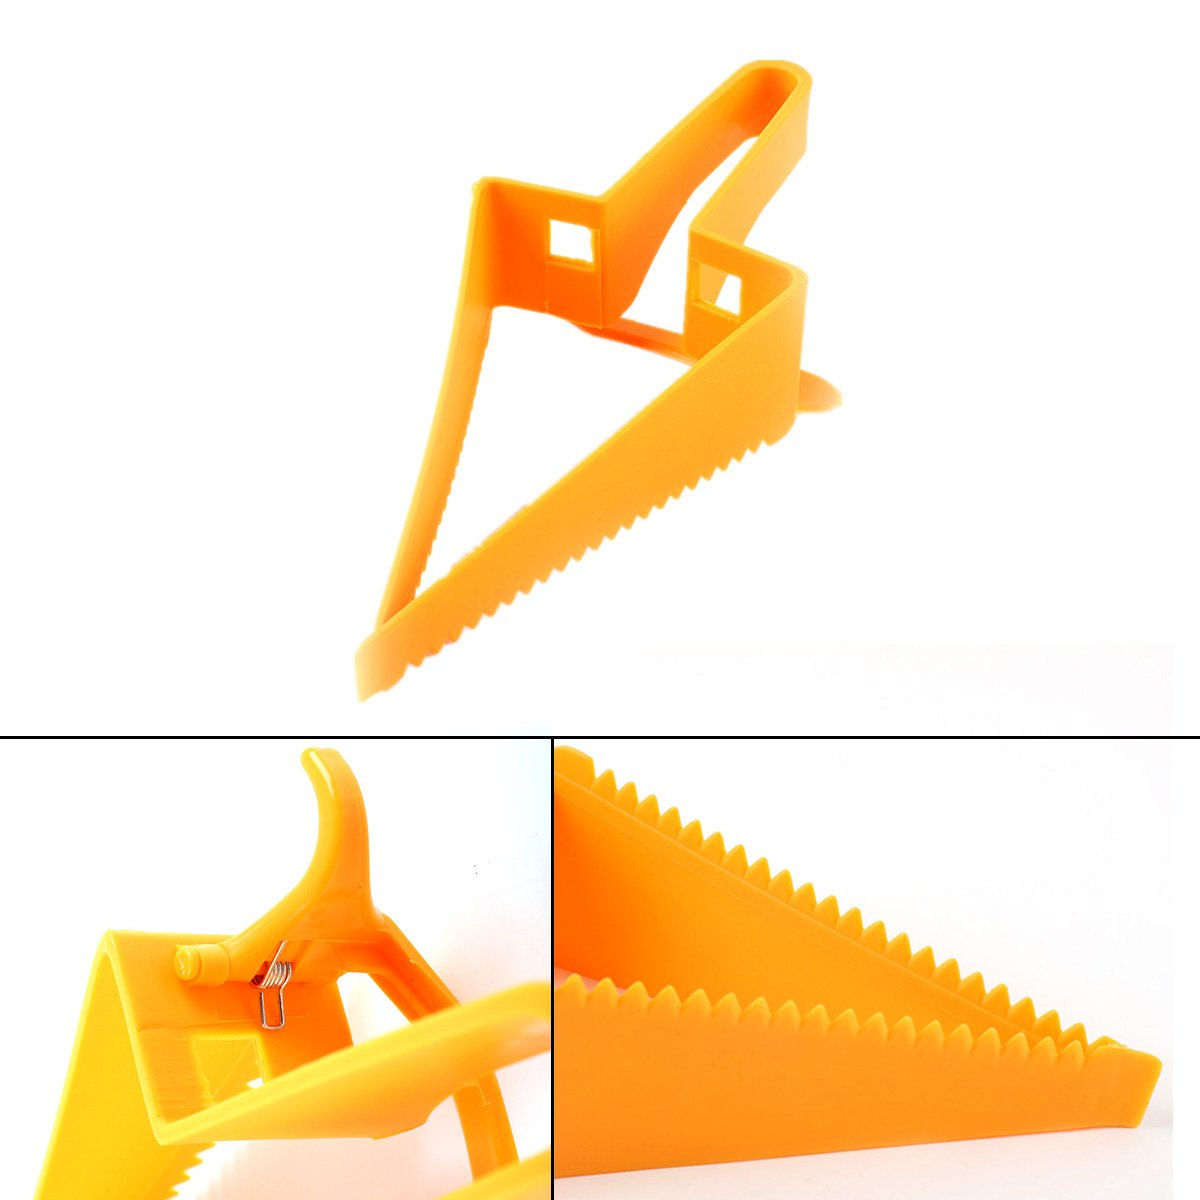 Nrpfell Triangle-Design Adjustable Cake Cutter Baking Tool Cake Slicer Baking Cutter Tool by Nrpfell (Image #7)